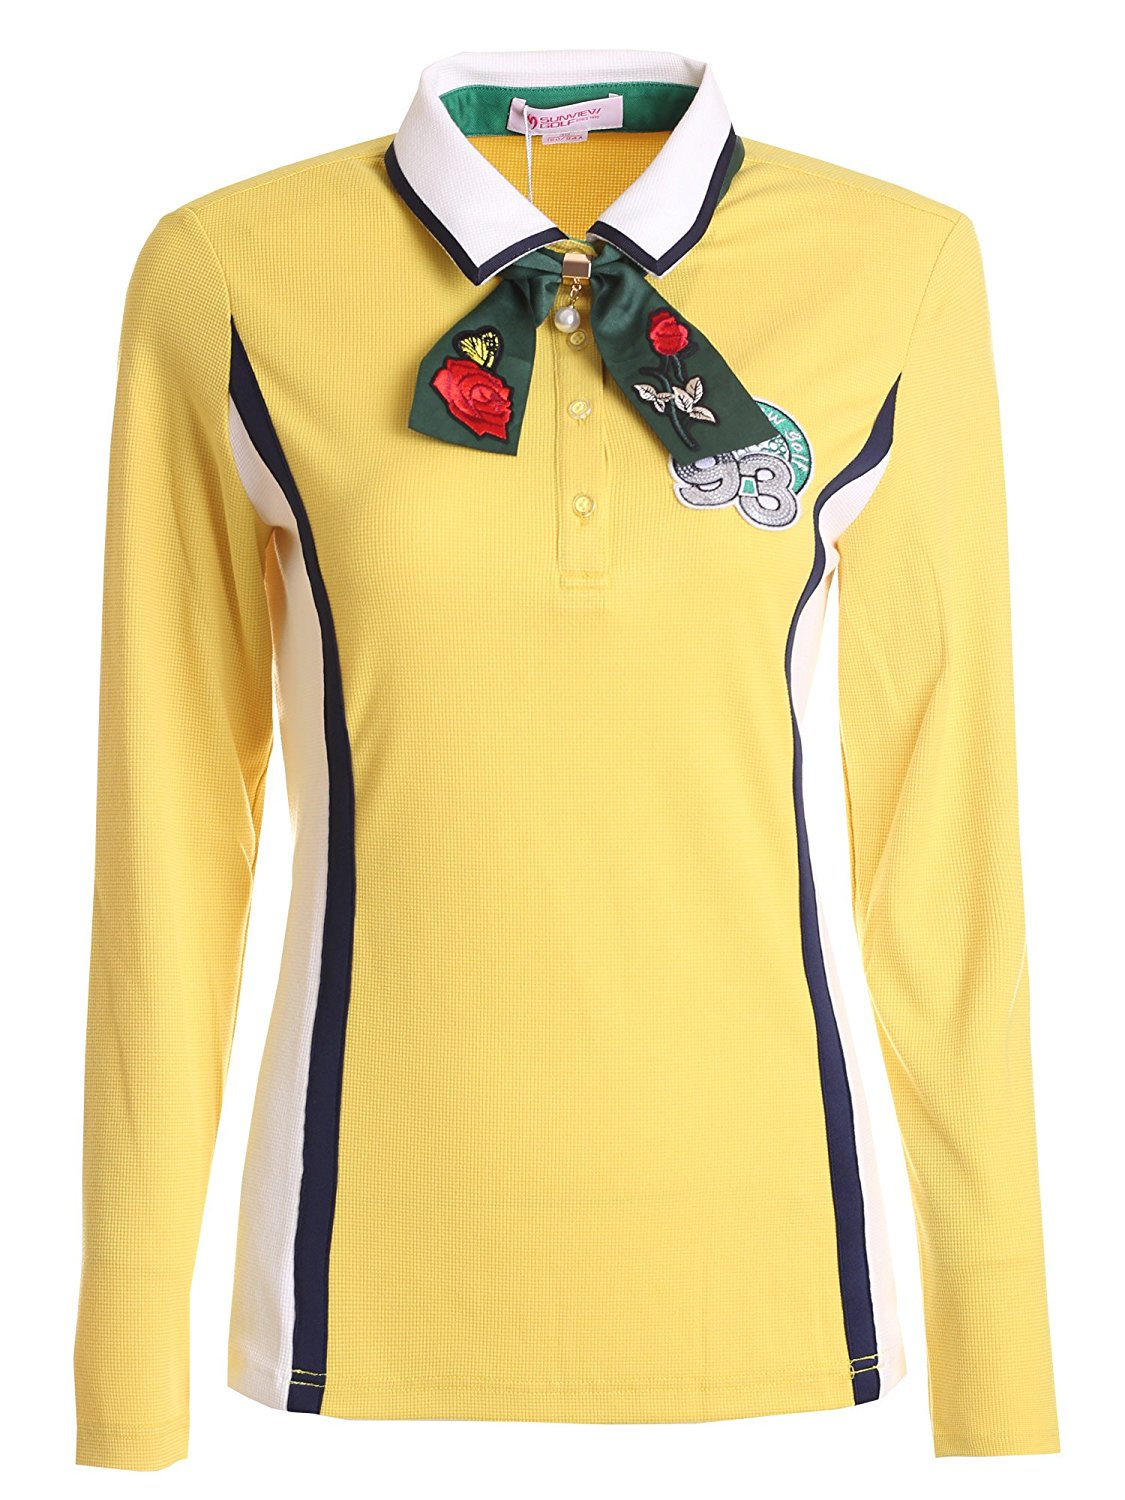 SunviewGolf Women's New Long Sleeve T-Shirt Bow Tie Golf Sport Knitted Polo Tops